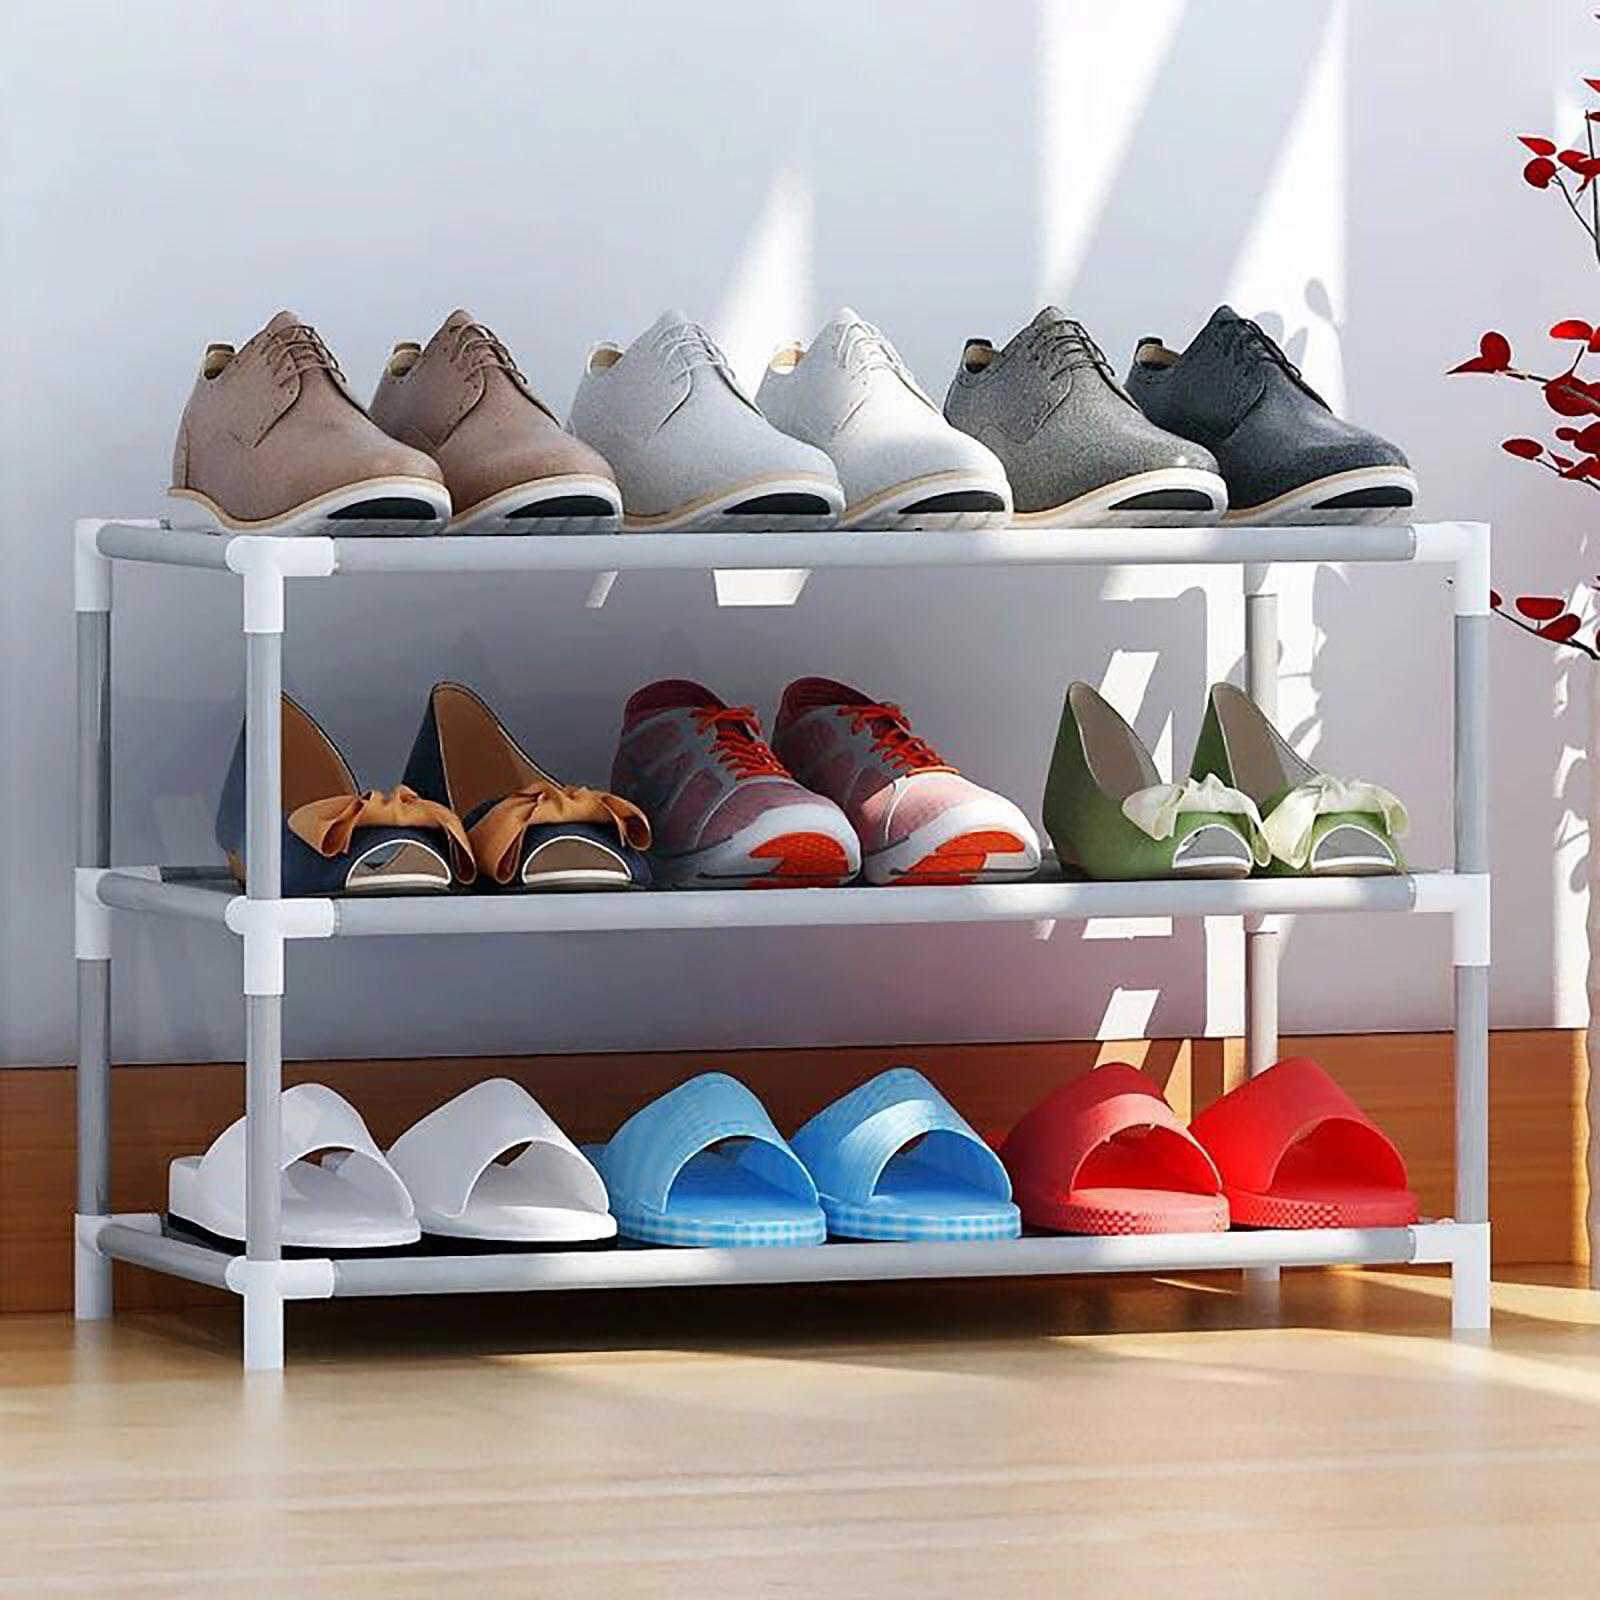 Shoe Ark Simple Multilayer Shoe Rack Assembly Dustproof Xg-3 By Vtow Cp Gadget.